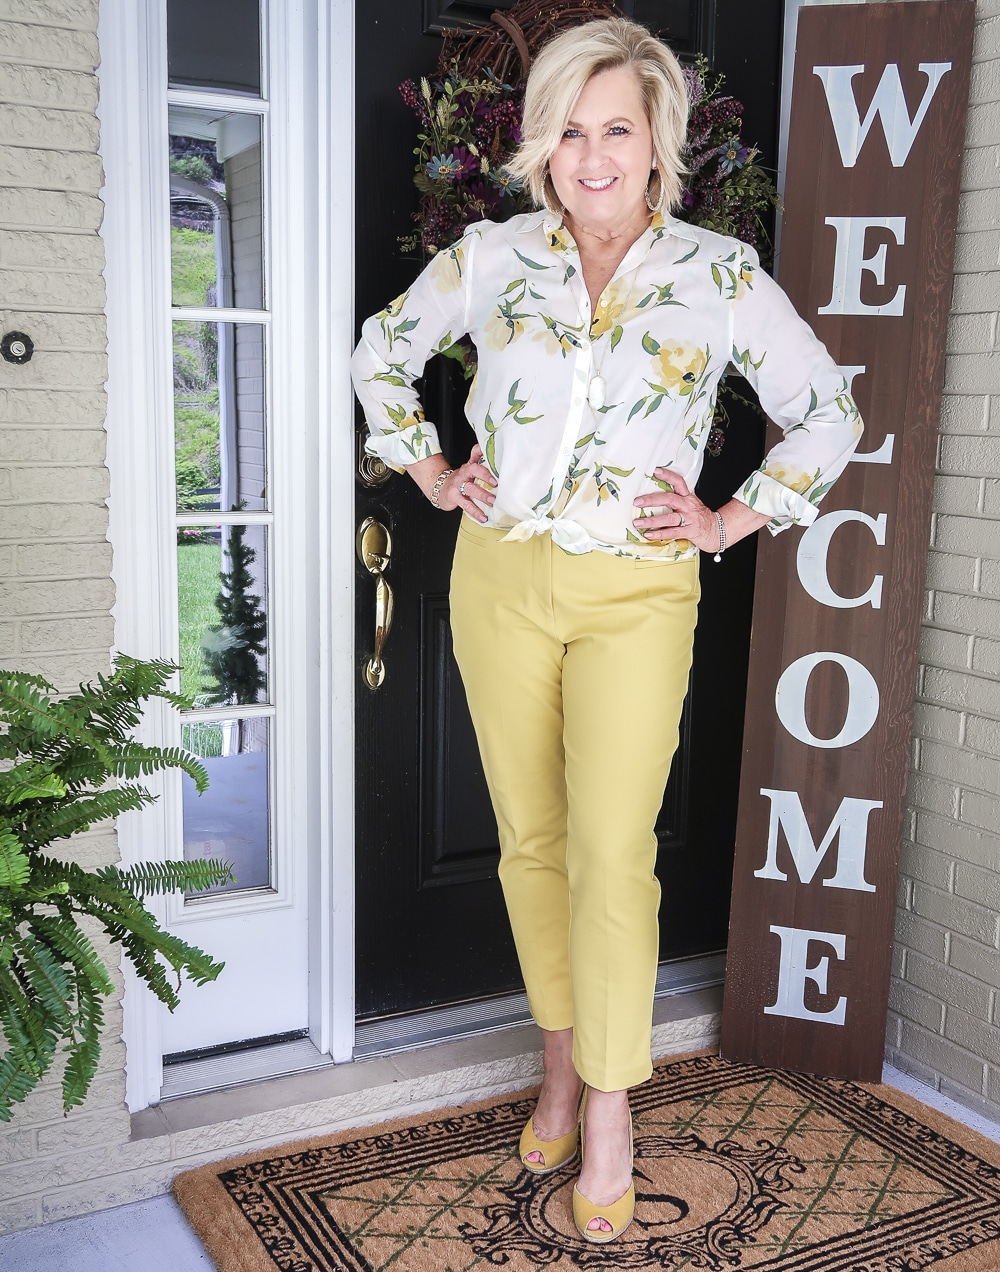 Fashion Blogger 50 Is Not Old is looking sunny in this white and yellow shirt and yellow pants, and a pair of yellow espadrilles from Michael Kors